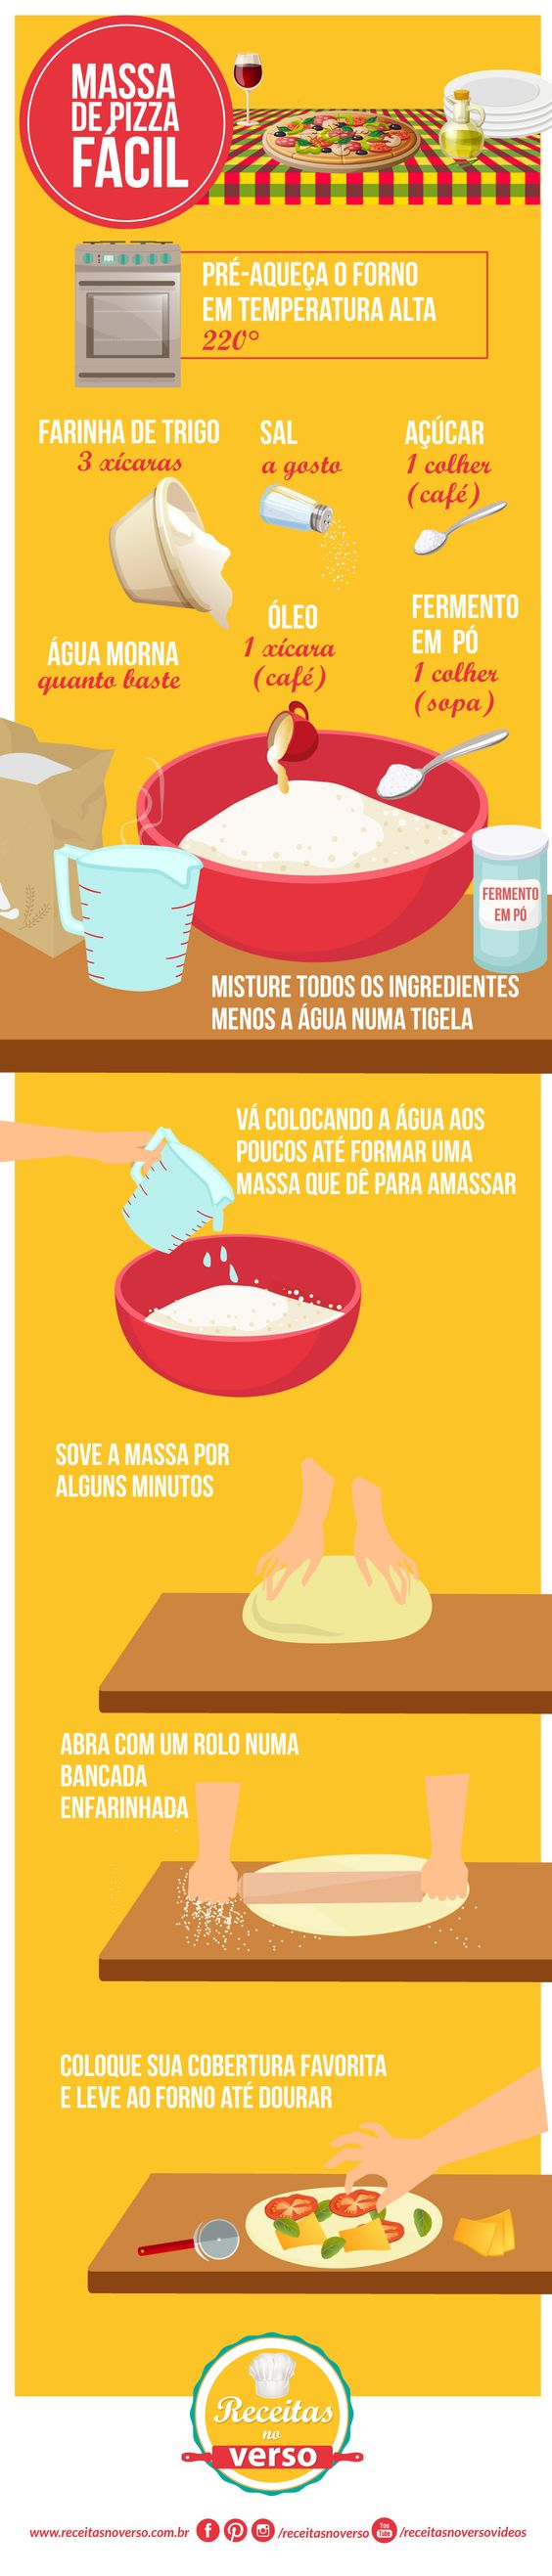 massa_pizza_infografico: